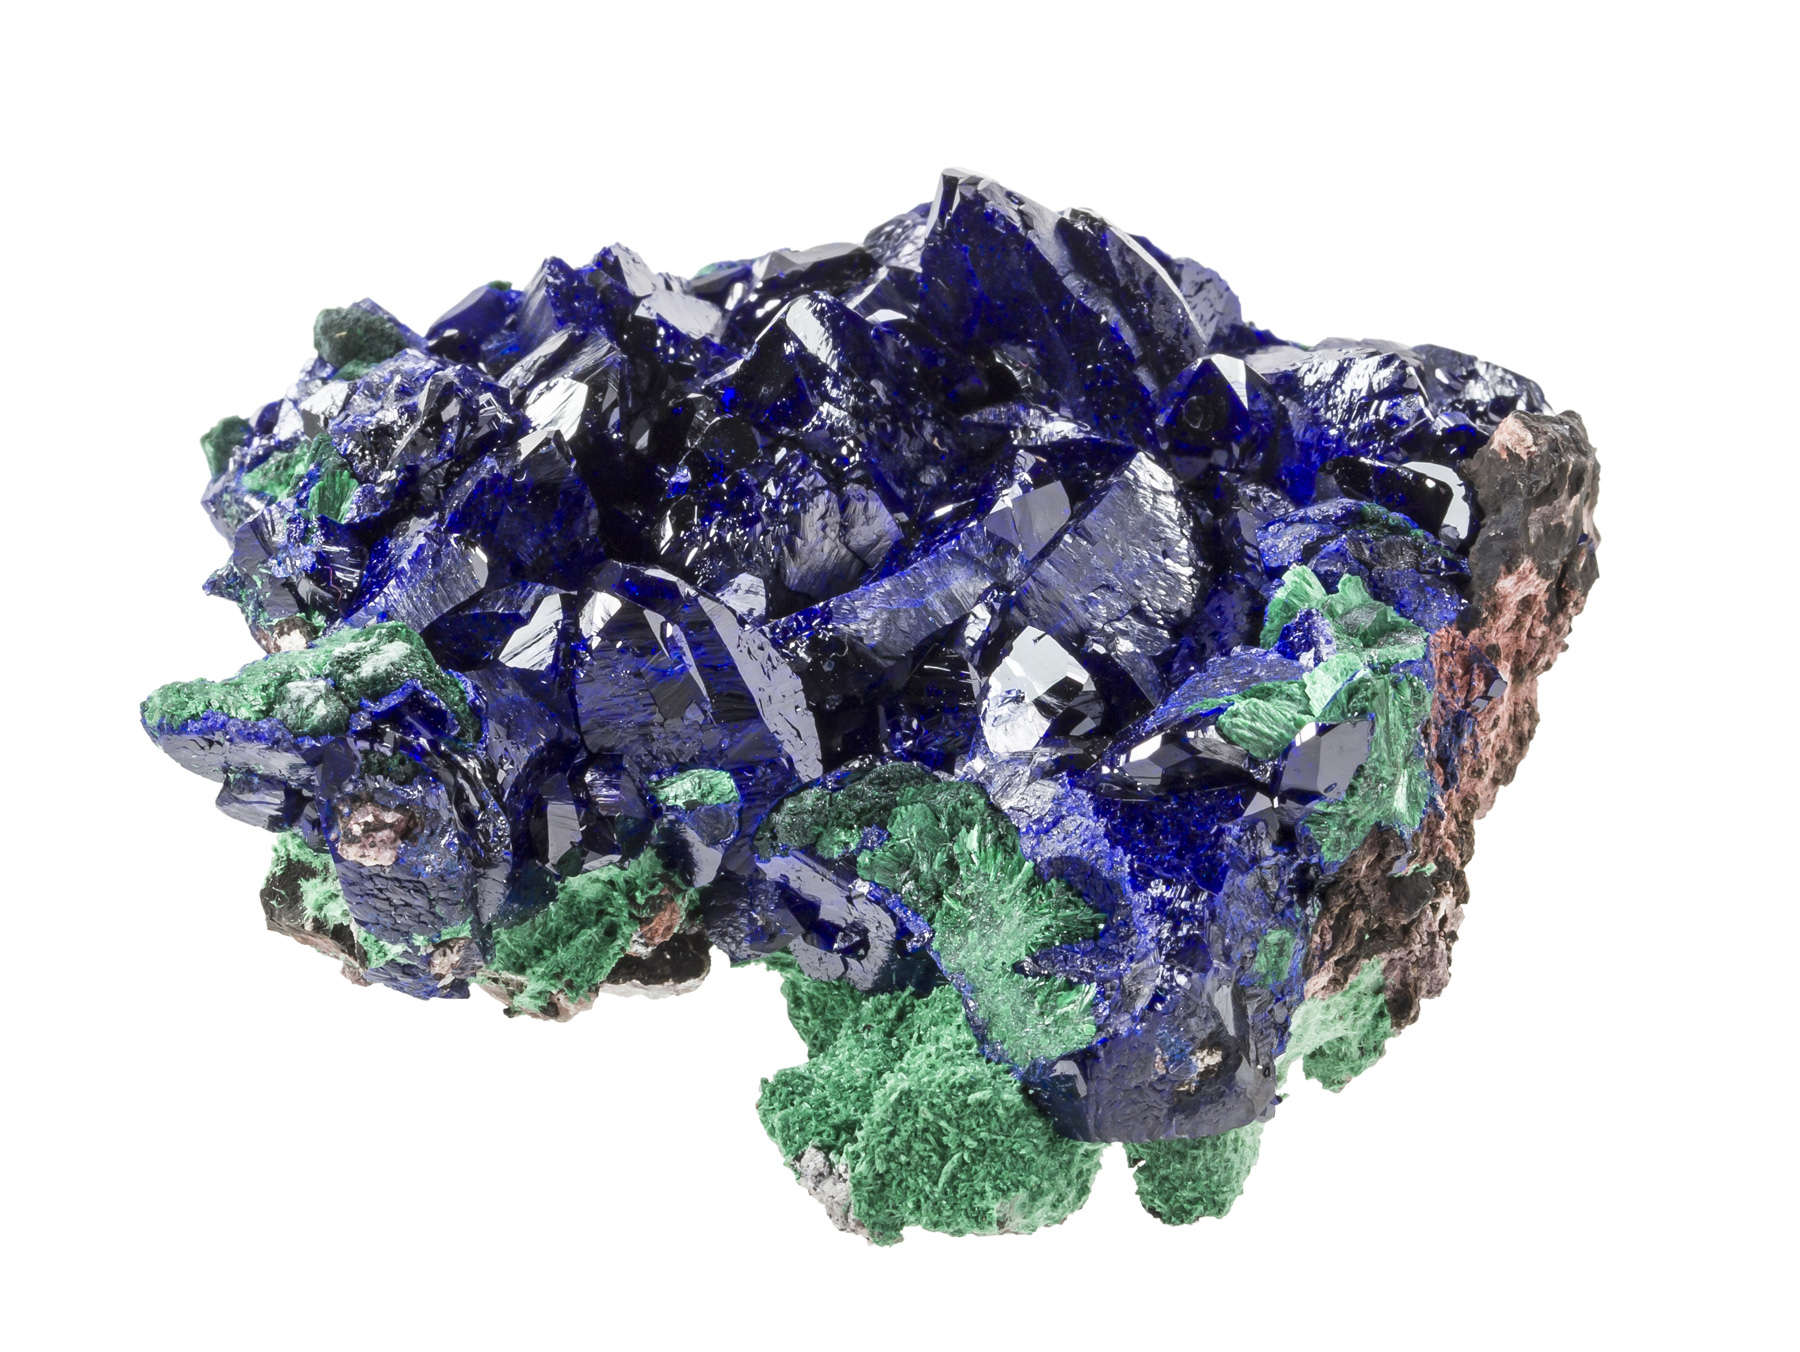 Shocking blue azurite crystals ringed bright malachite small cabinet